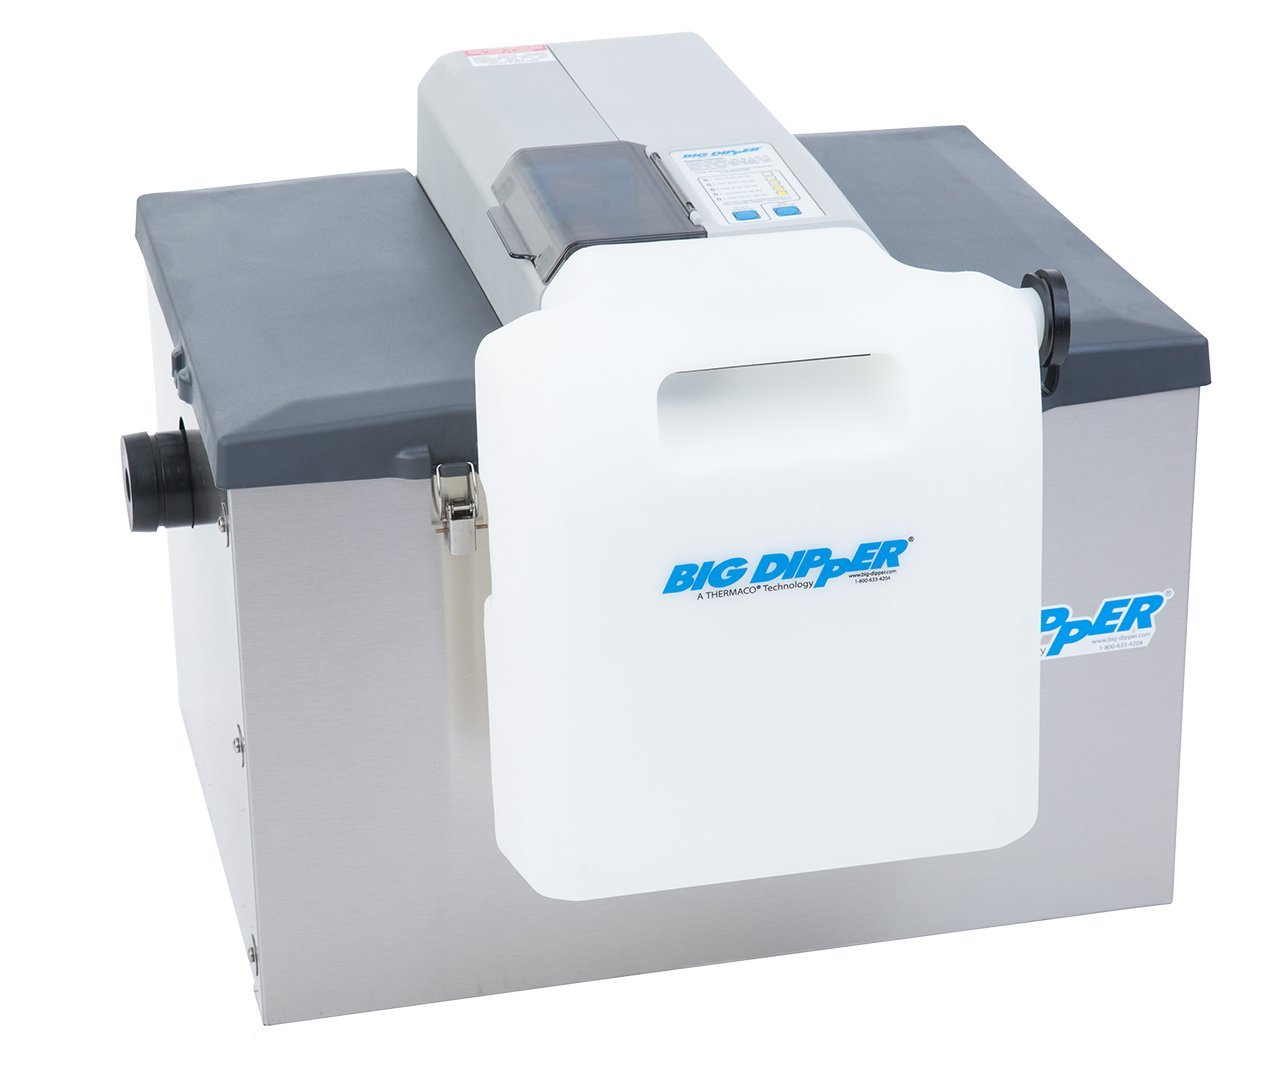 Big Dipper W-250-IS - 25 GPM Stainless Steel Automatic Grease Removal Unit